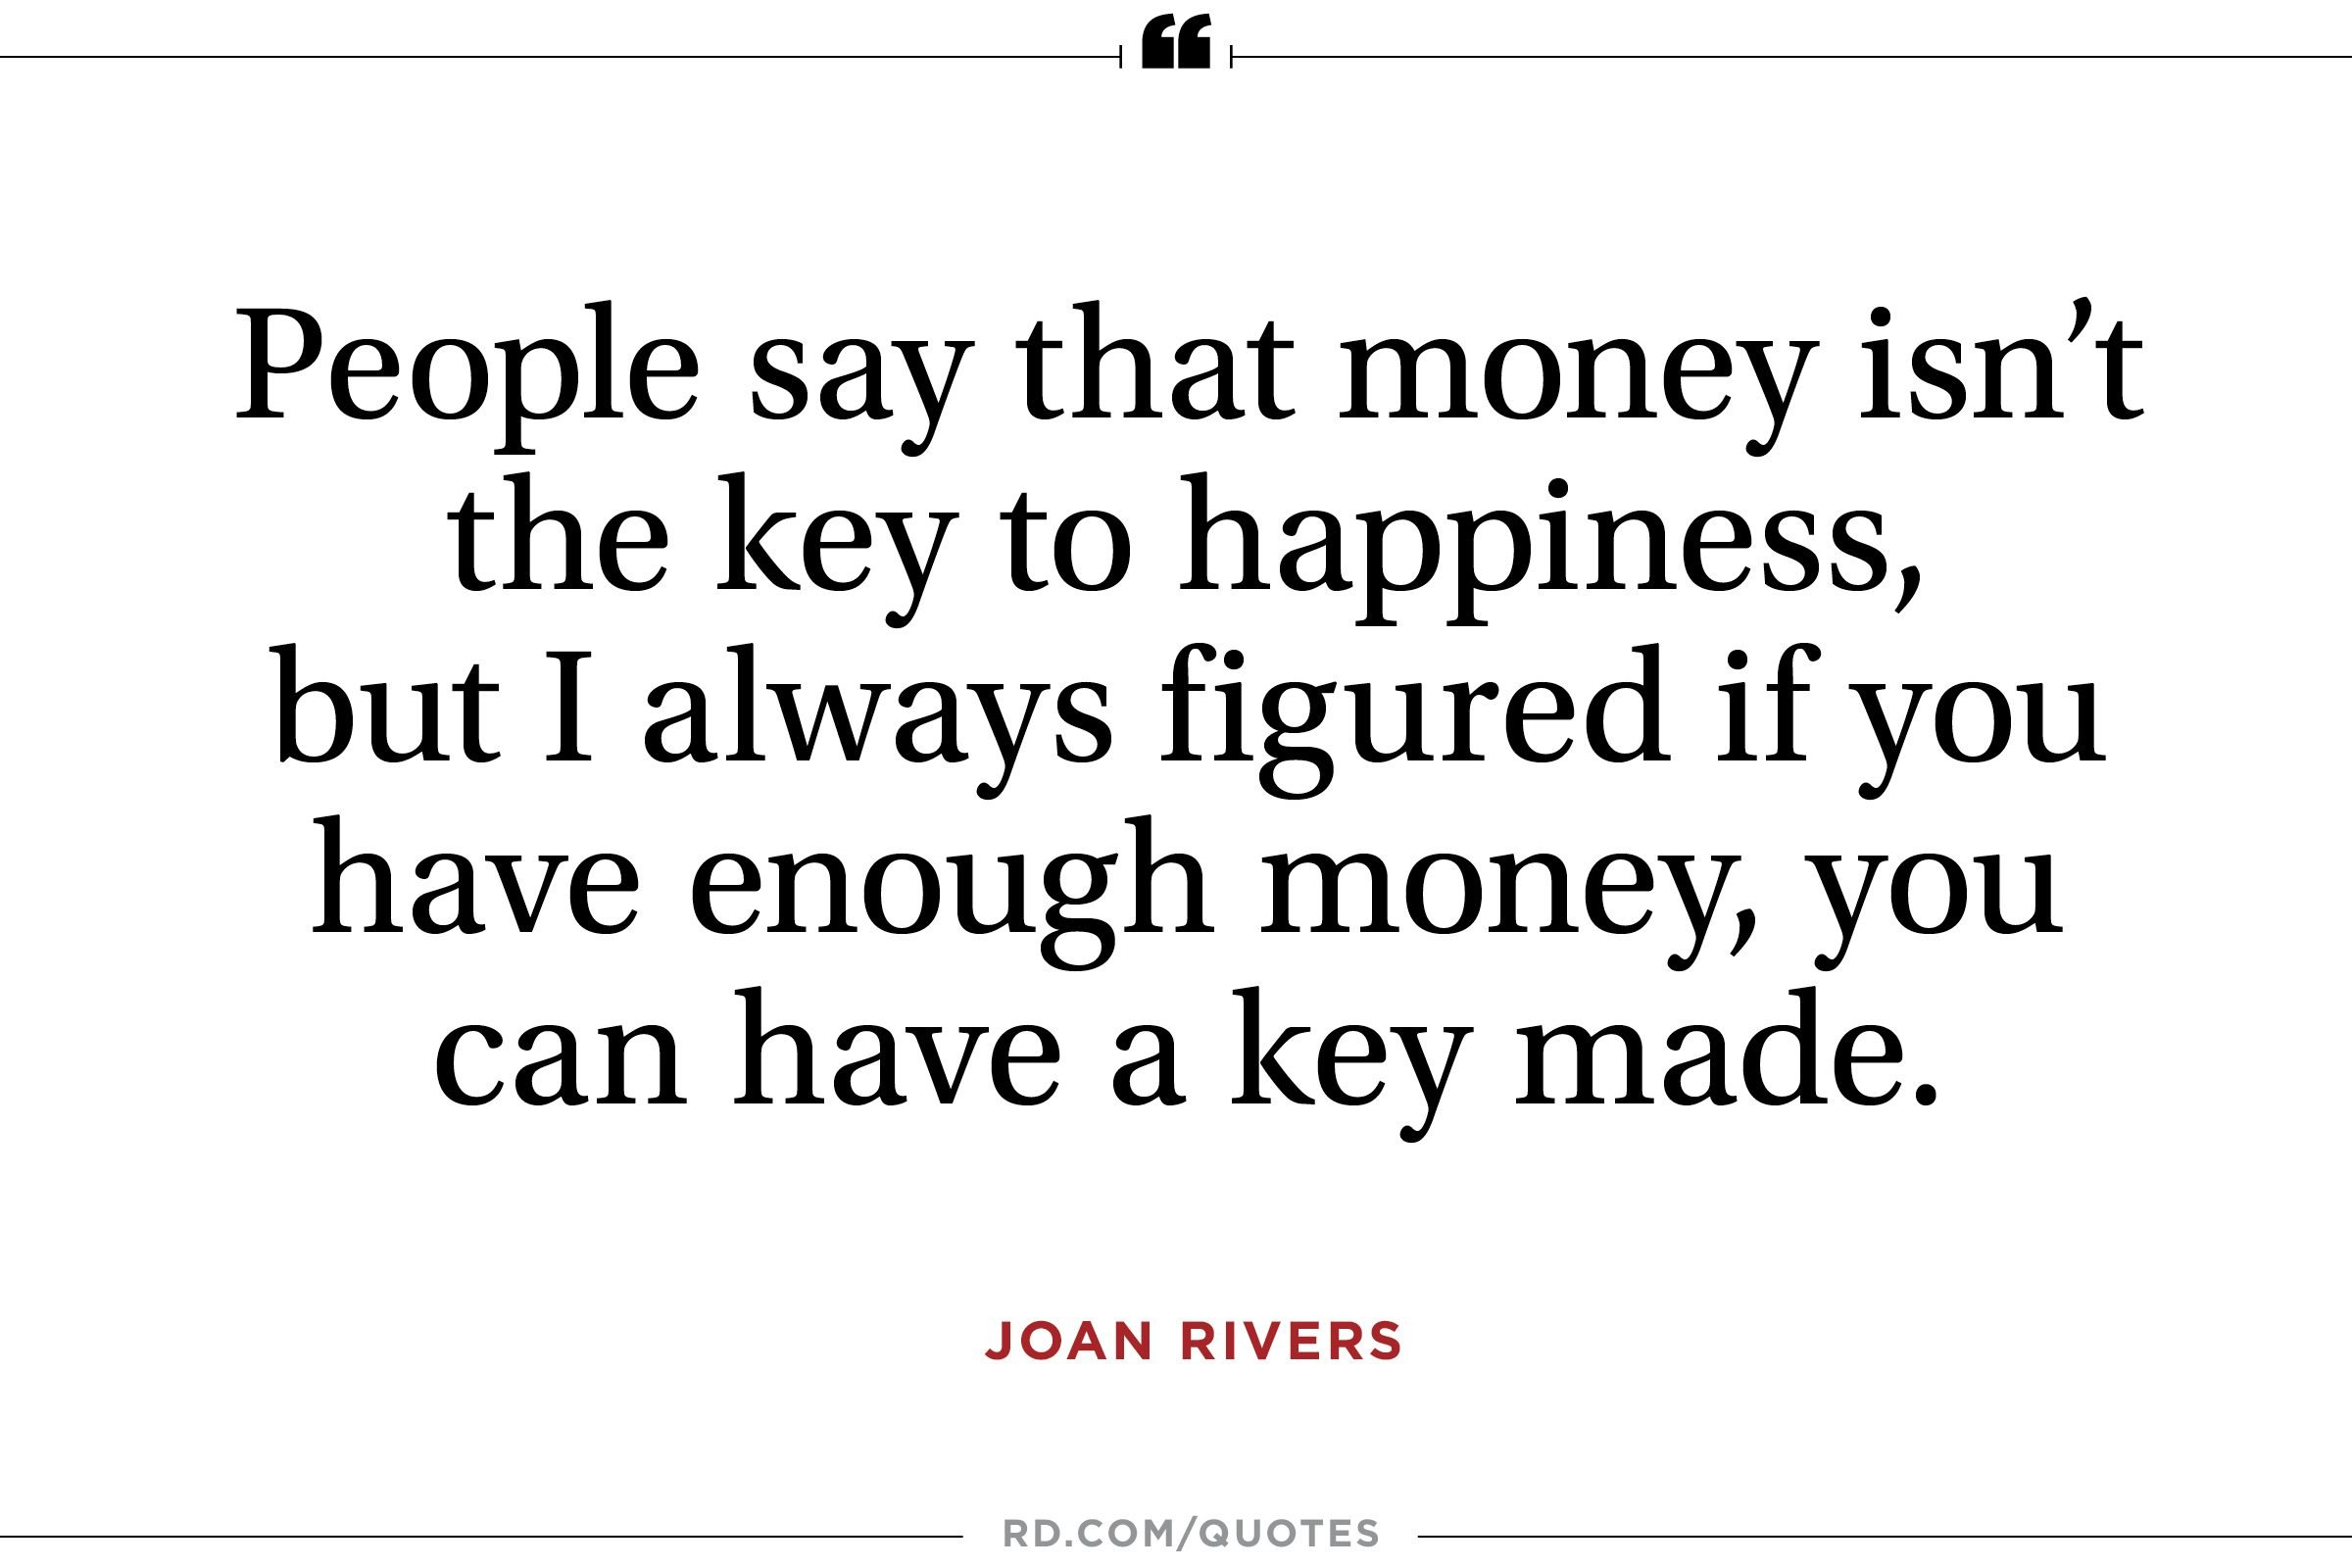 Quotes On Happiness Joan Rivers Quotes 7 Candid Hilarious Unapologetic Quips